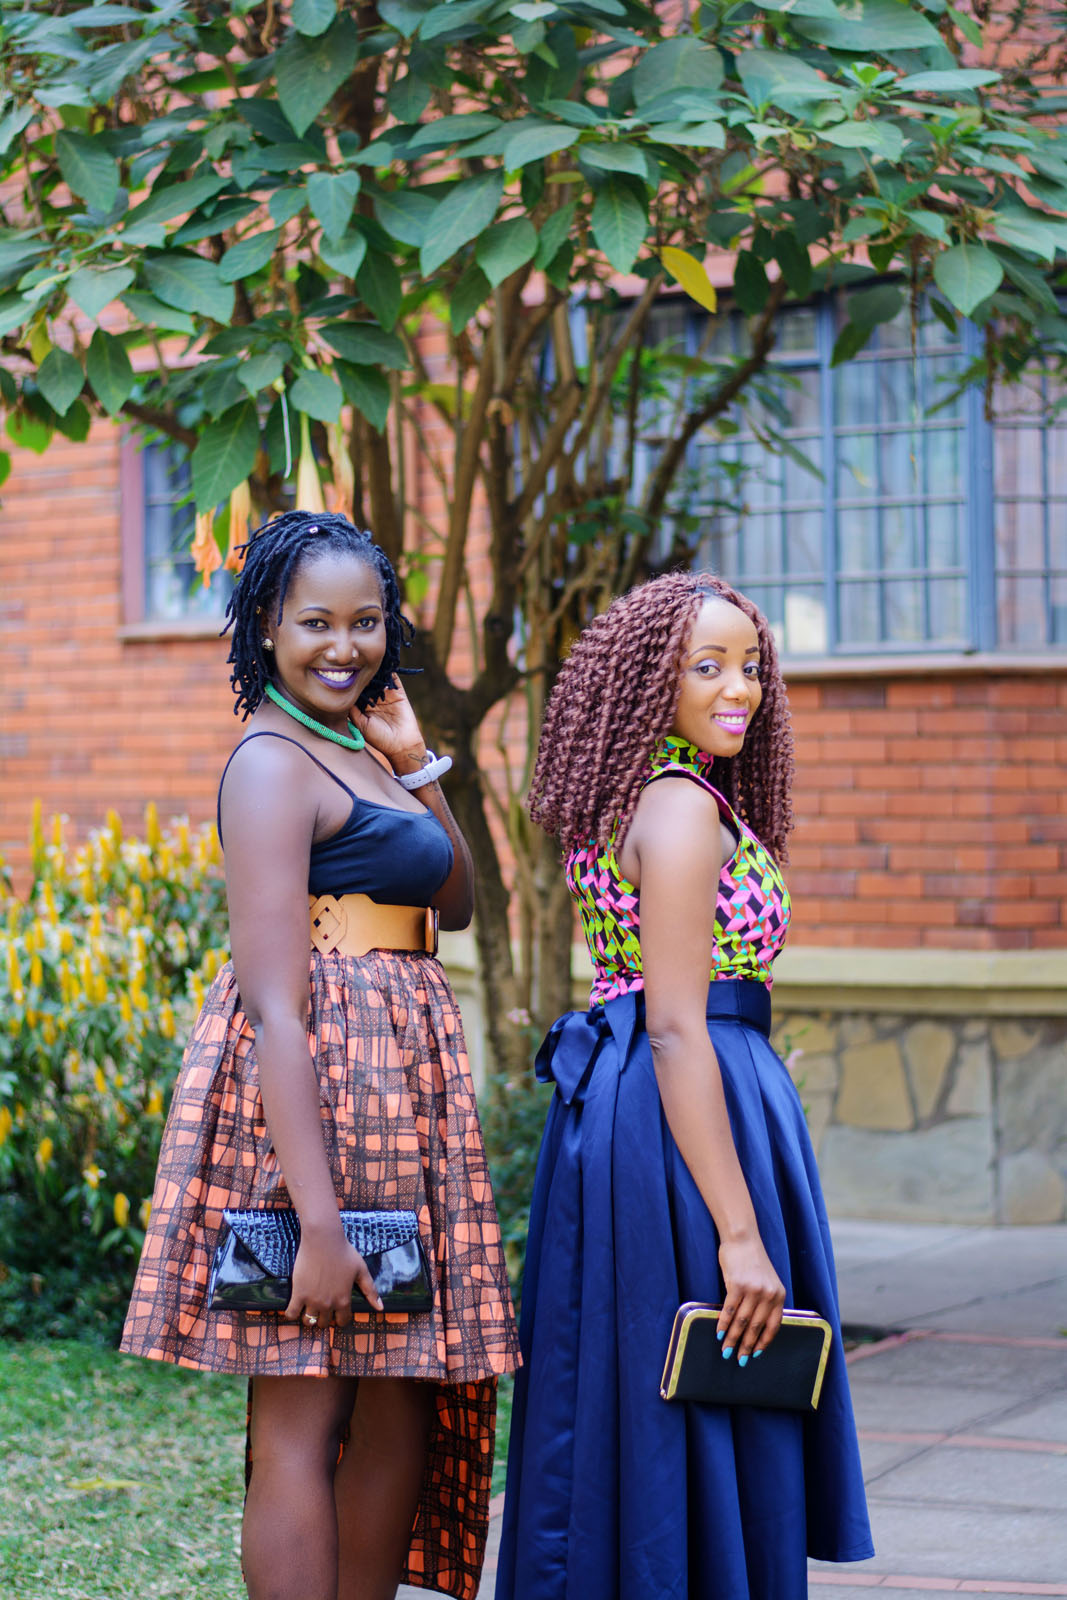 wanjiru-kariuki-church-fashion-4